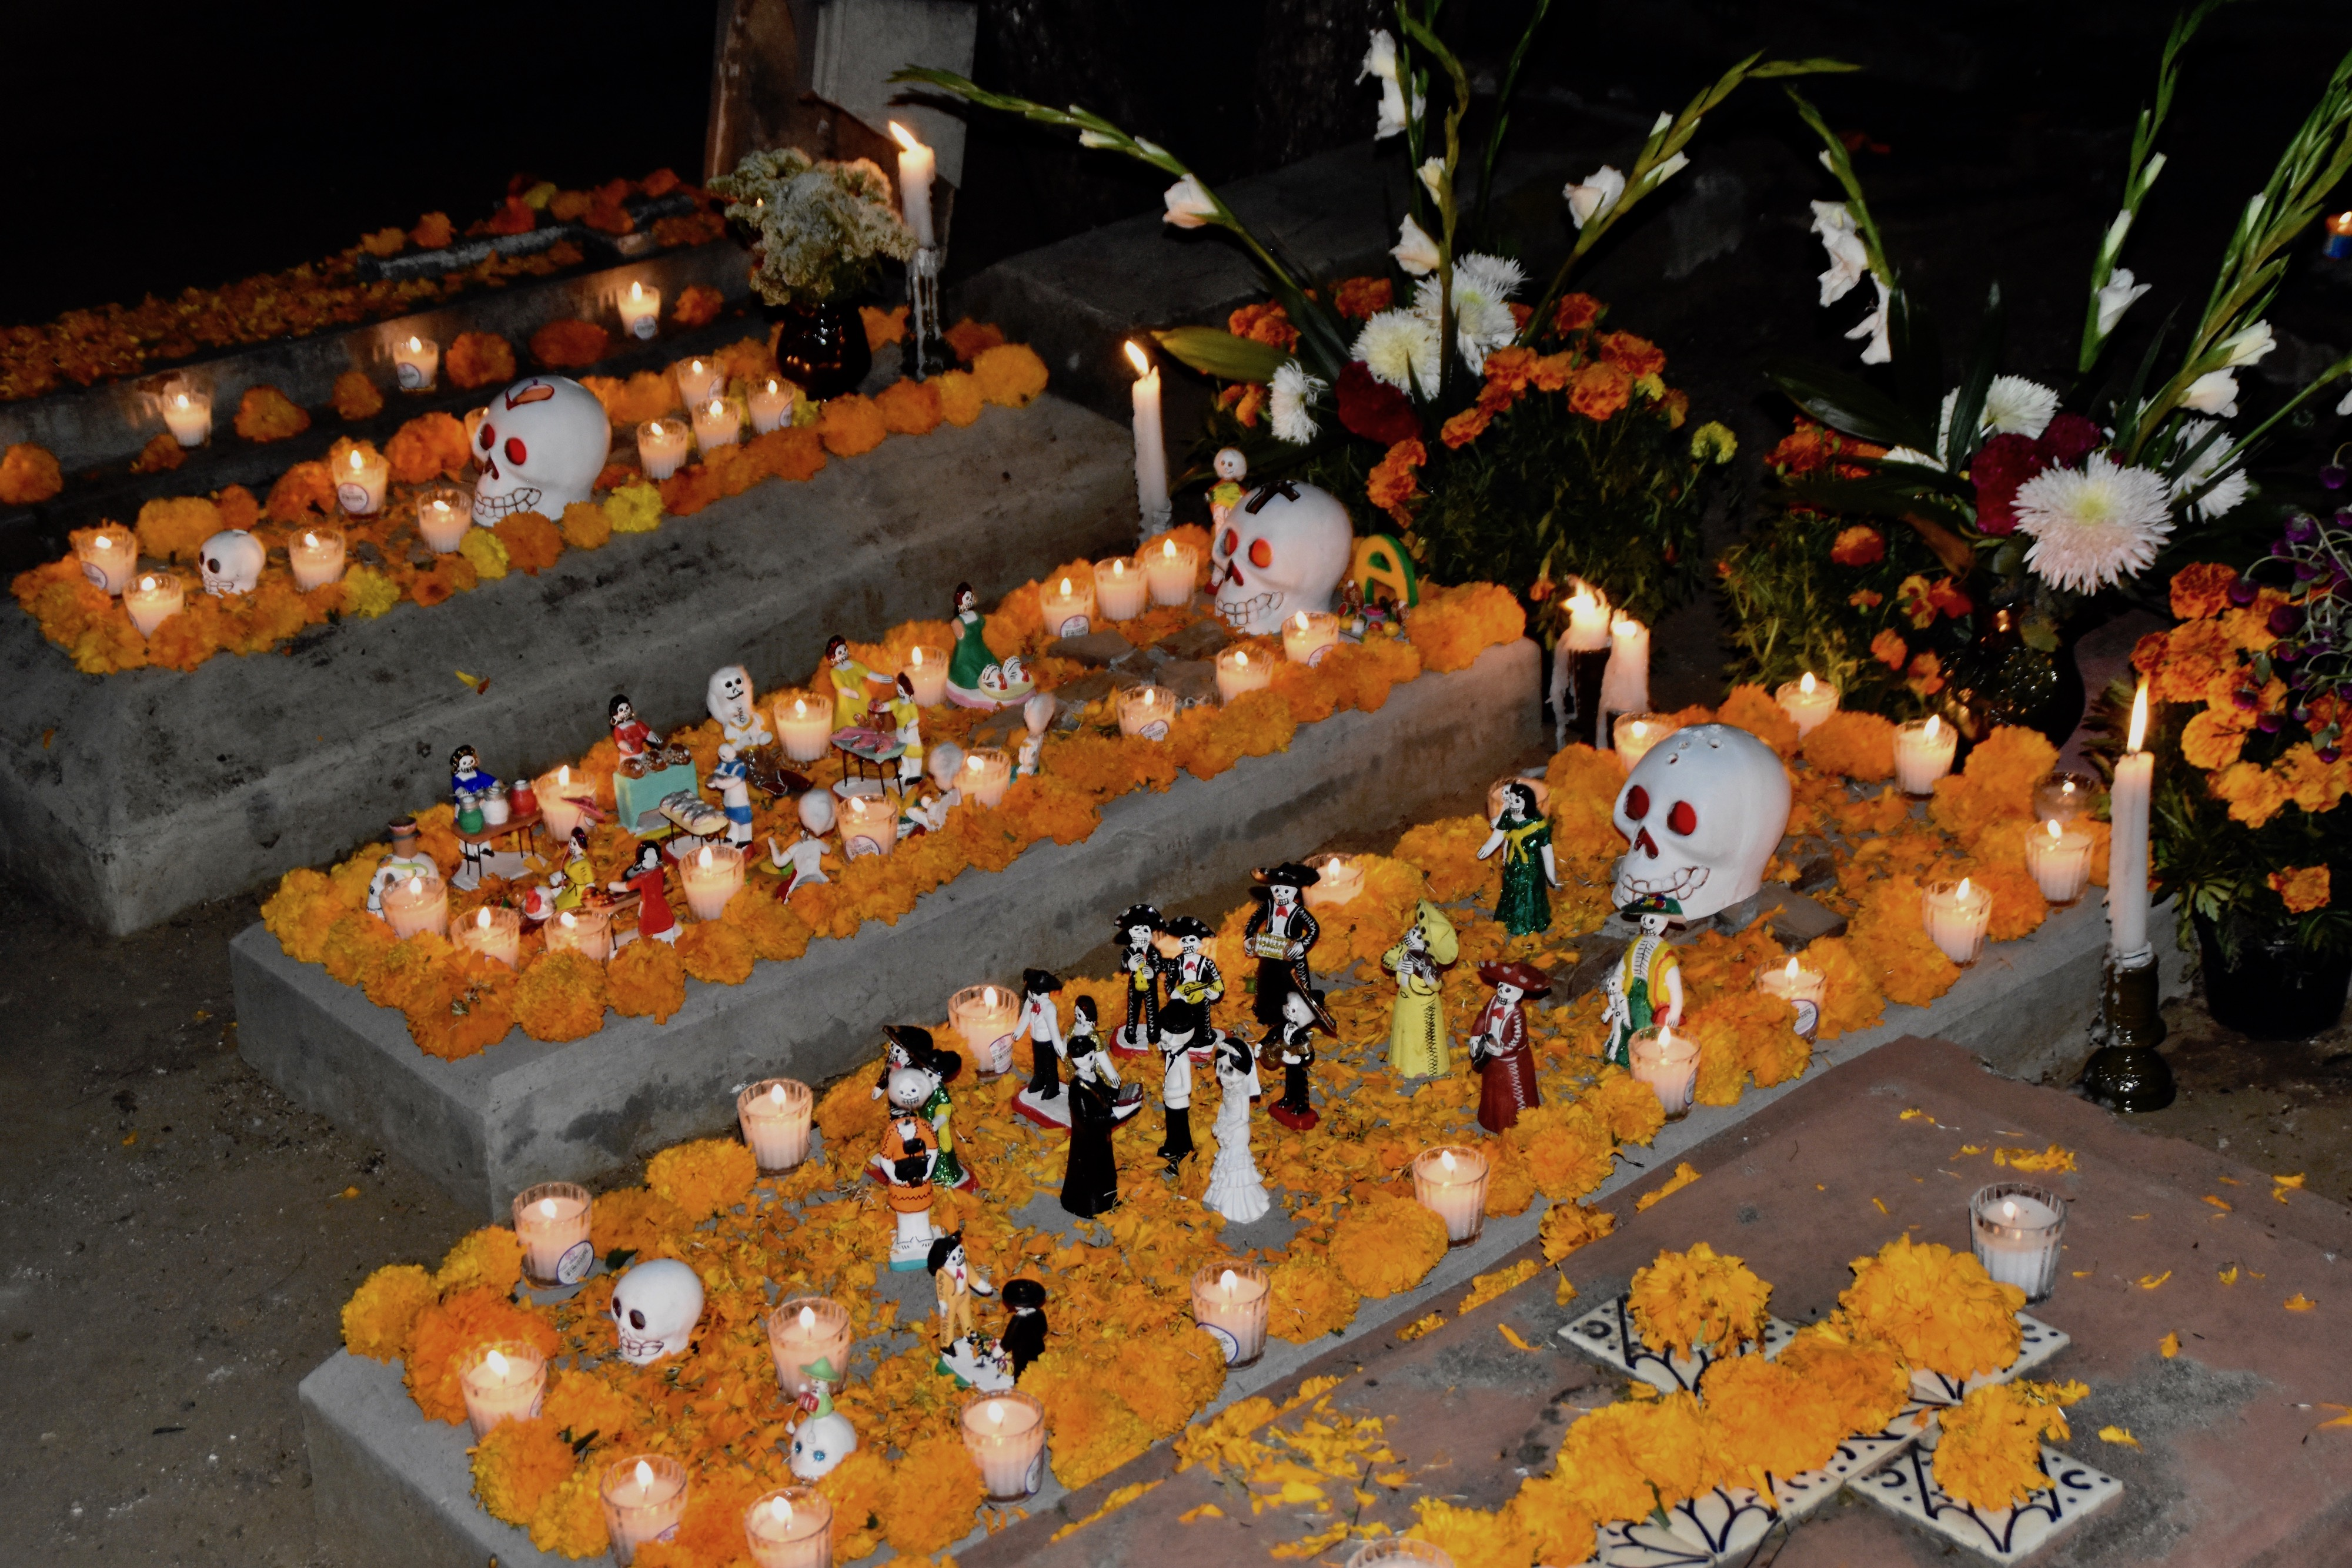 Cemetery - Day of the Dead